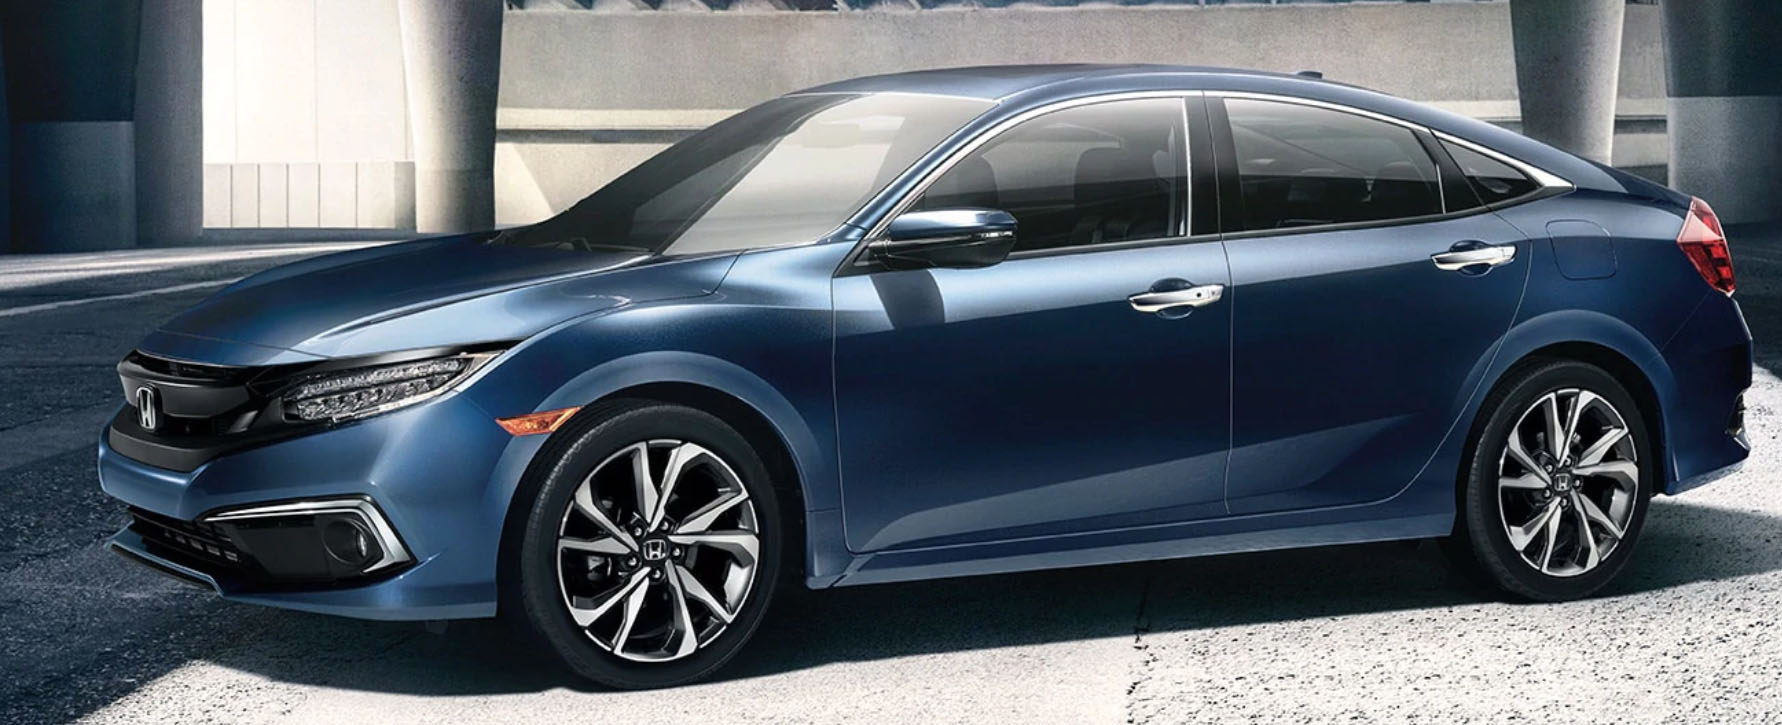 2020 Honda Civic Sedan Appearance Main Img